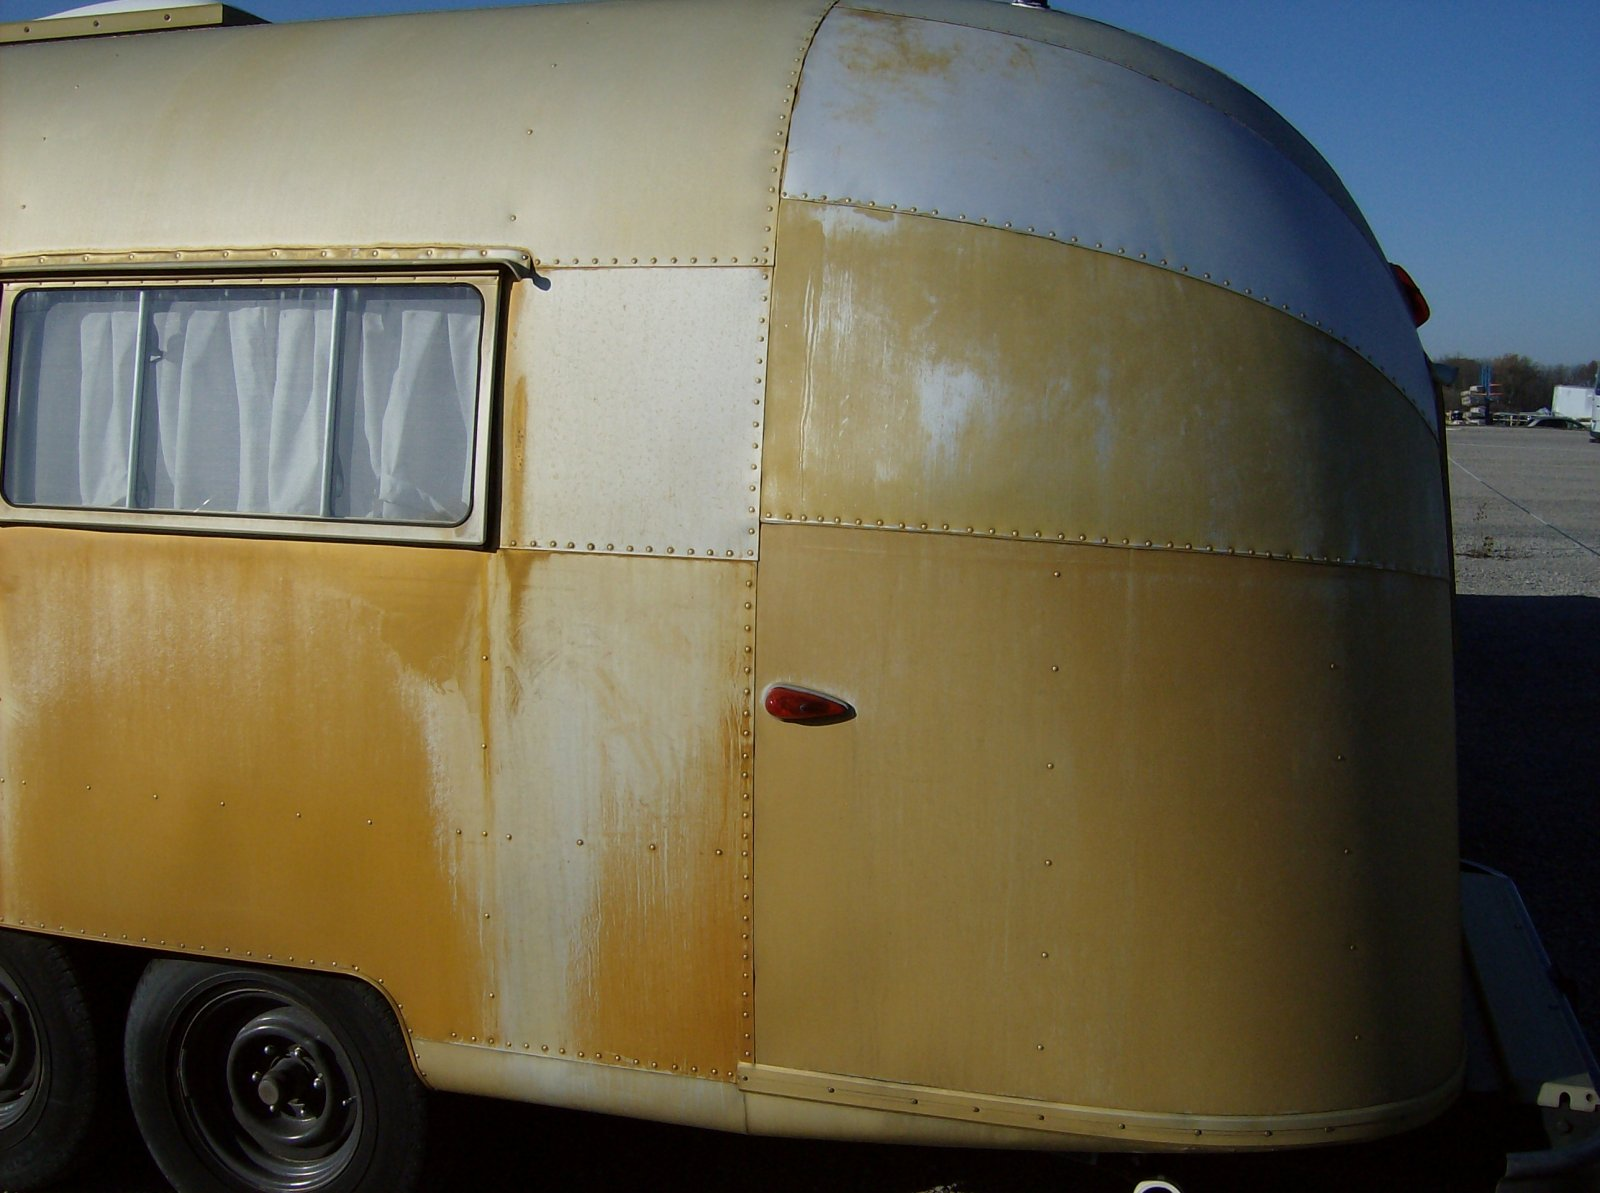 Click image for larger version  Name:Wally's Gold Trailer 7.jpg Views:96 Size:208.4 KB ID:148012